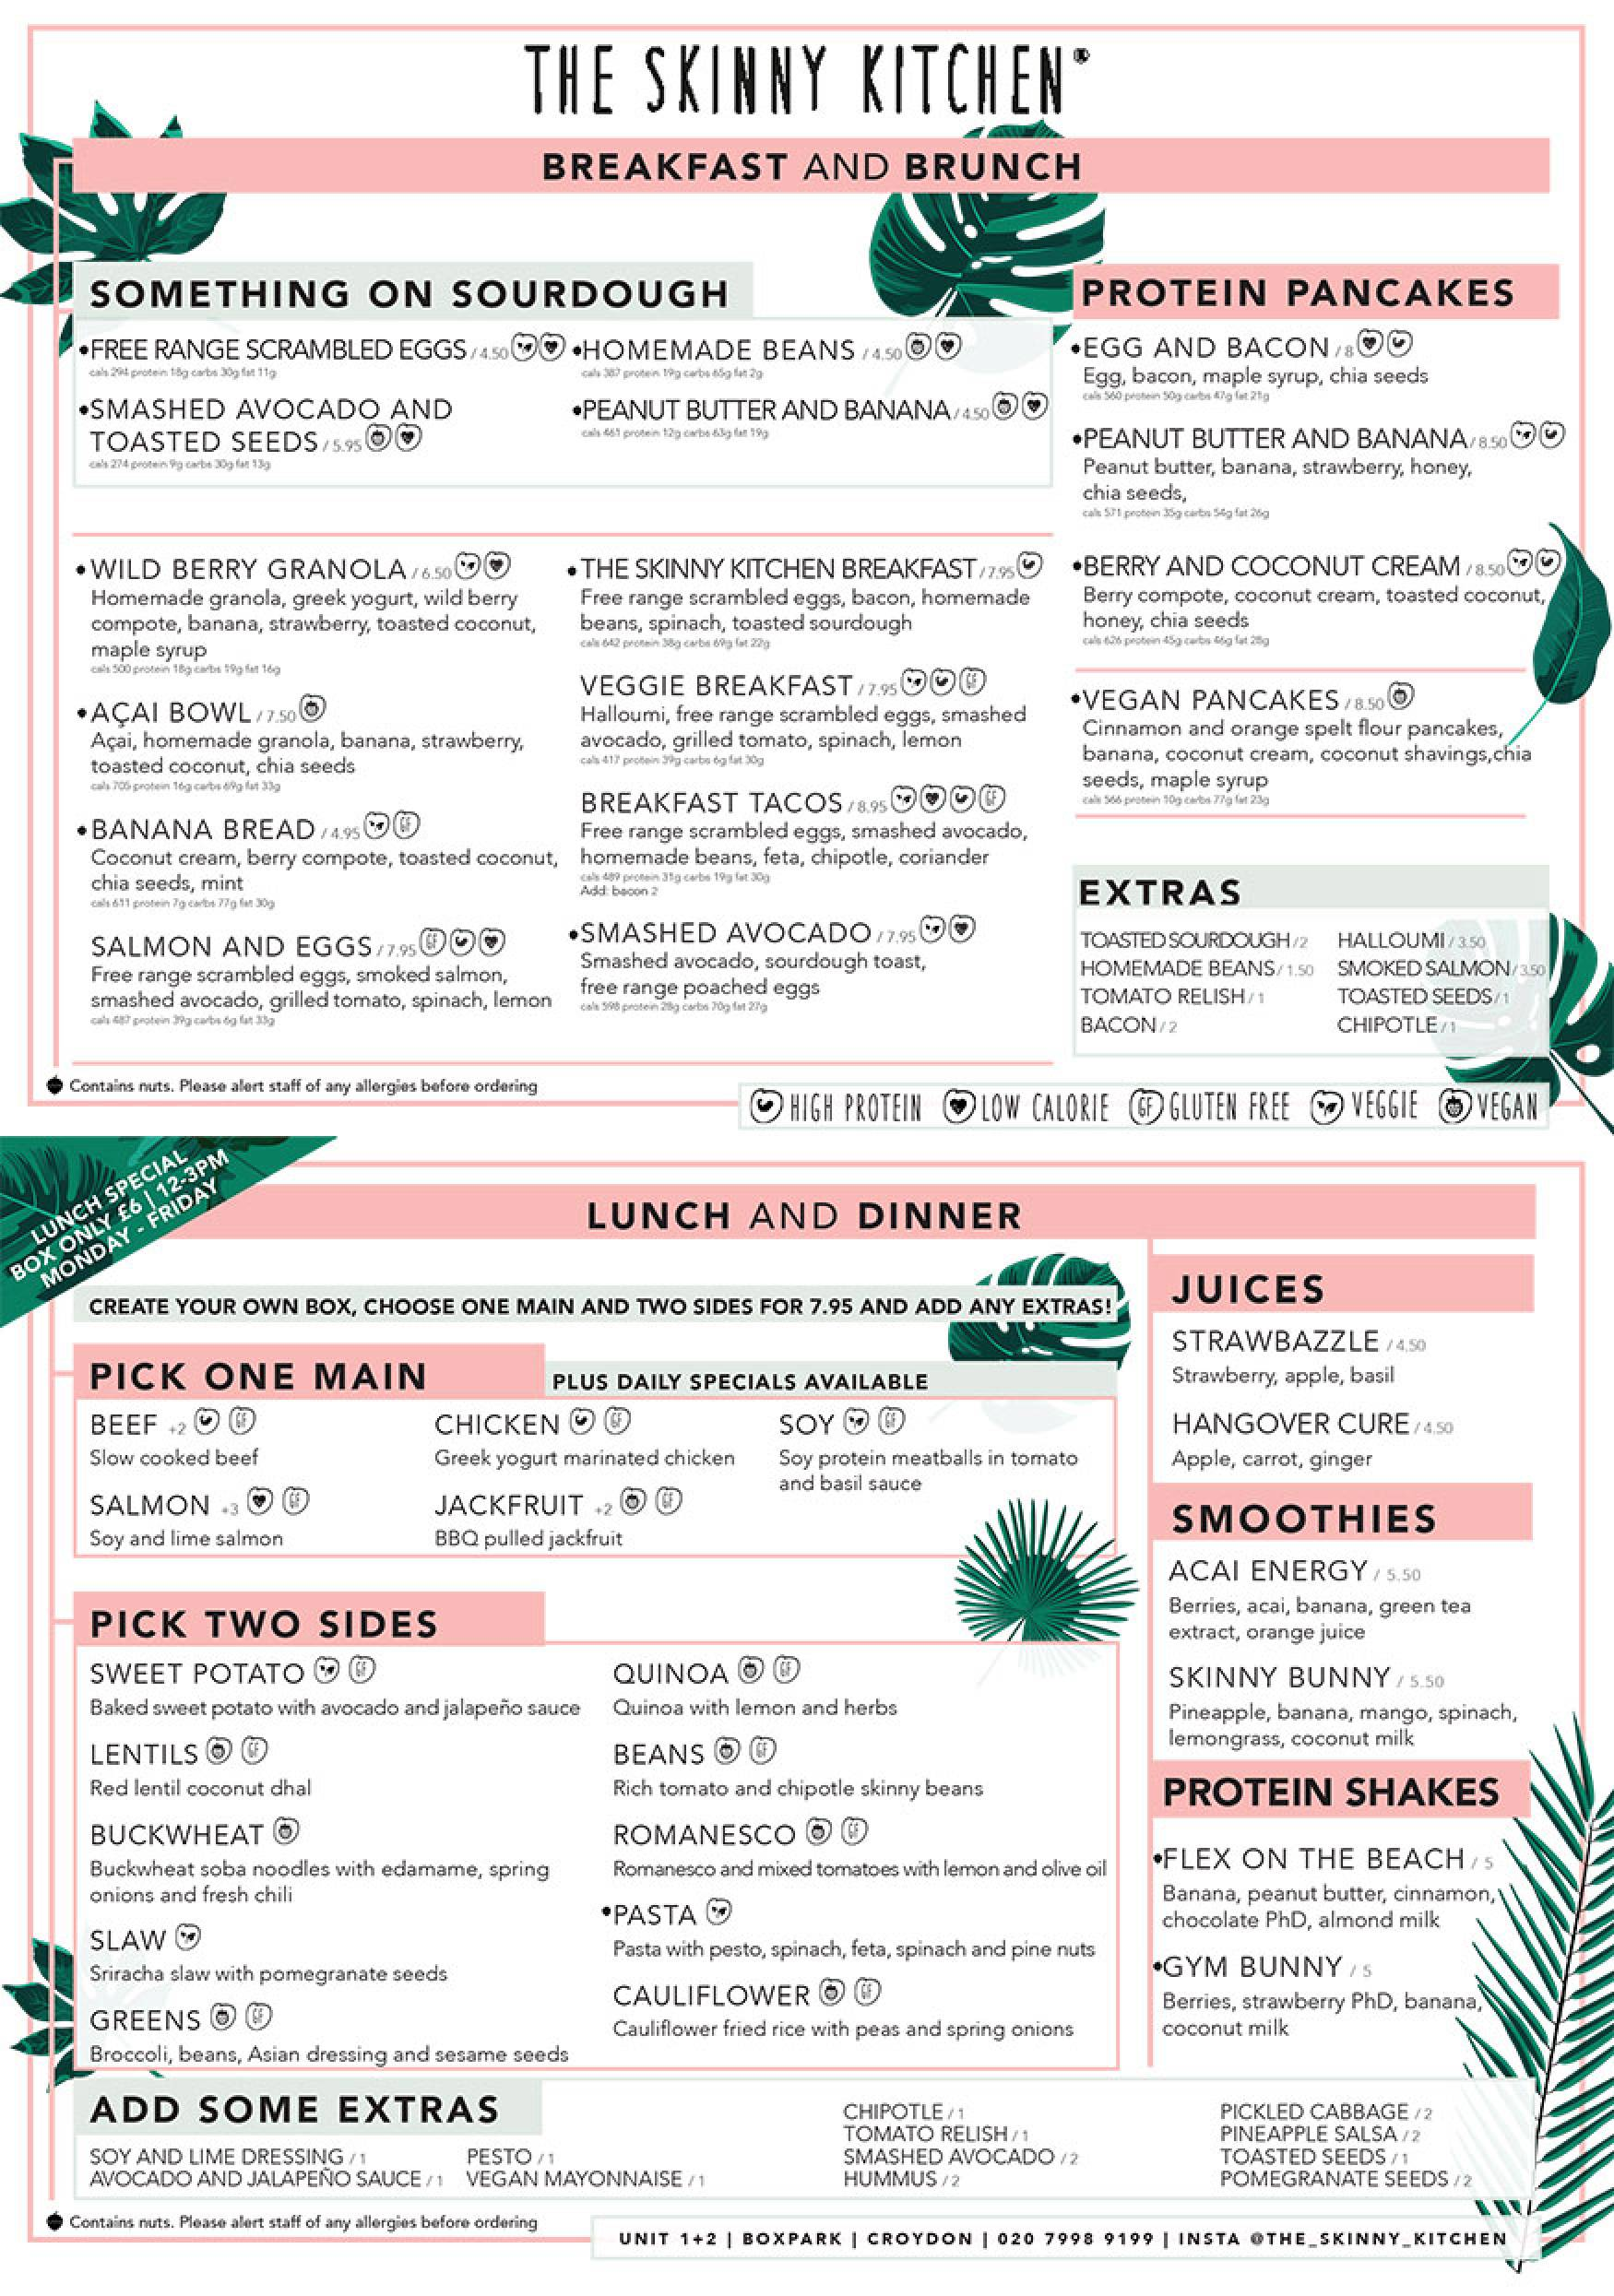 The Skinny Kitchen menu